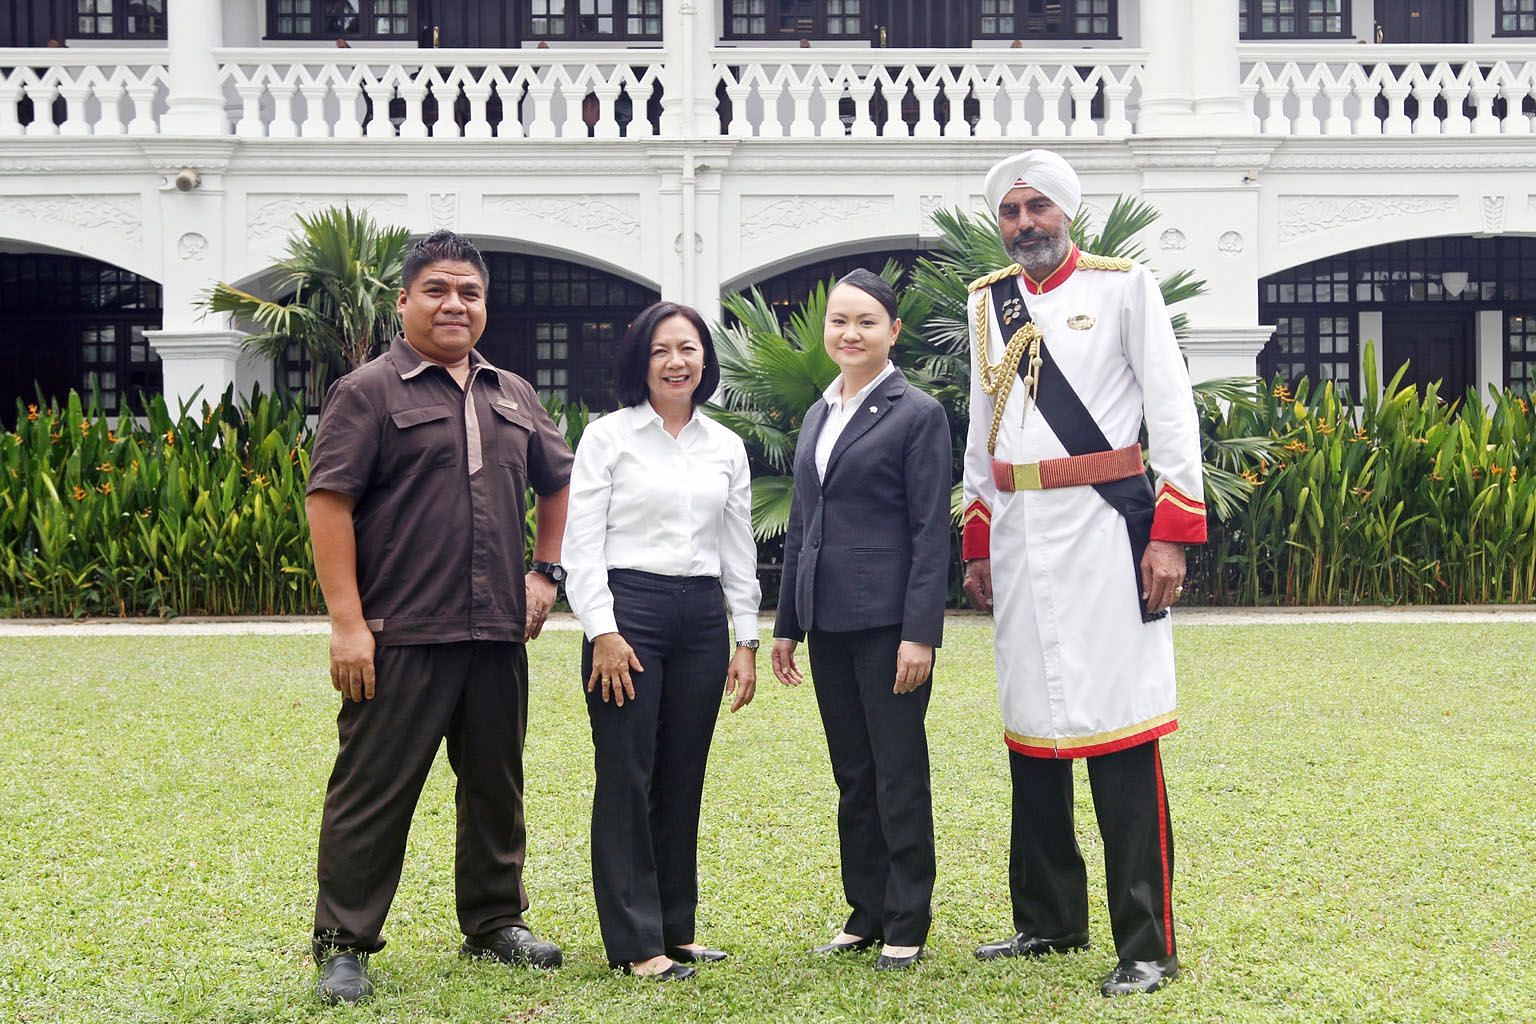 Among the many faces working to preserve the facade and hospitality of the colonial-era Raffles Hotel are (from left) Mr Samsol Misbah, assistant chief engineer; Madam Joey Chea, restaurant senior captain; Ms Serene Lim, food and beverage operations